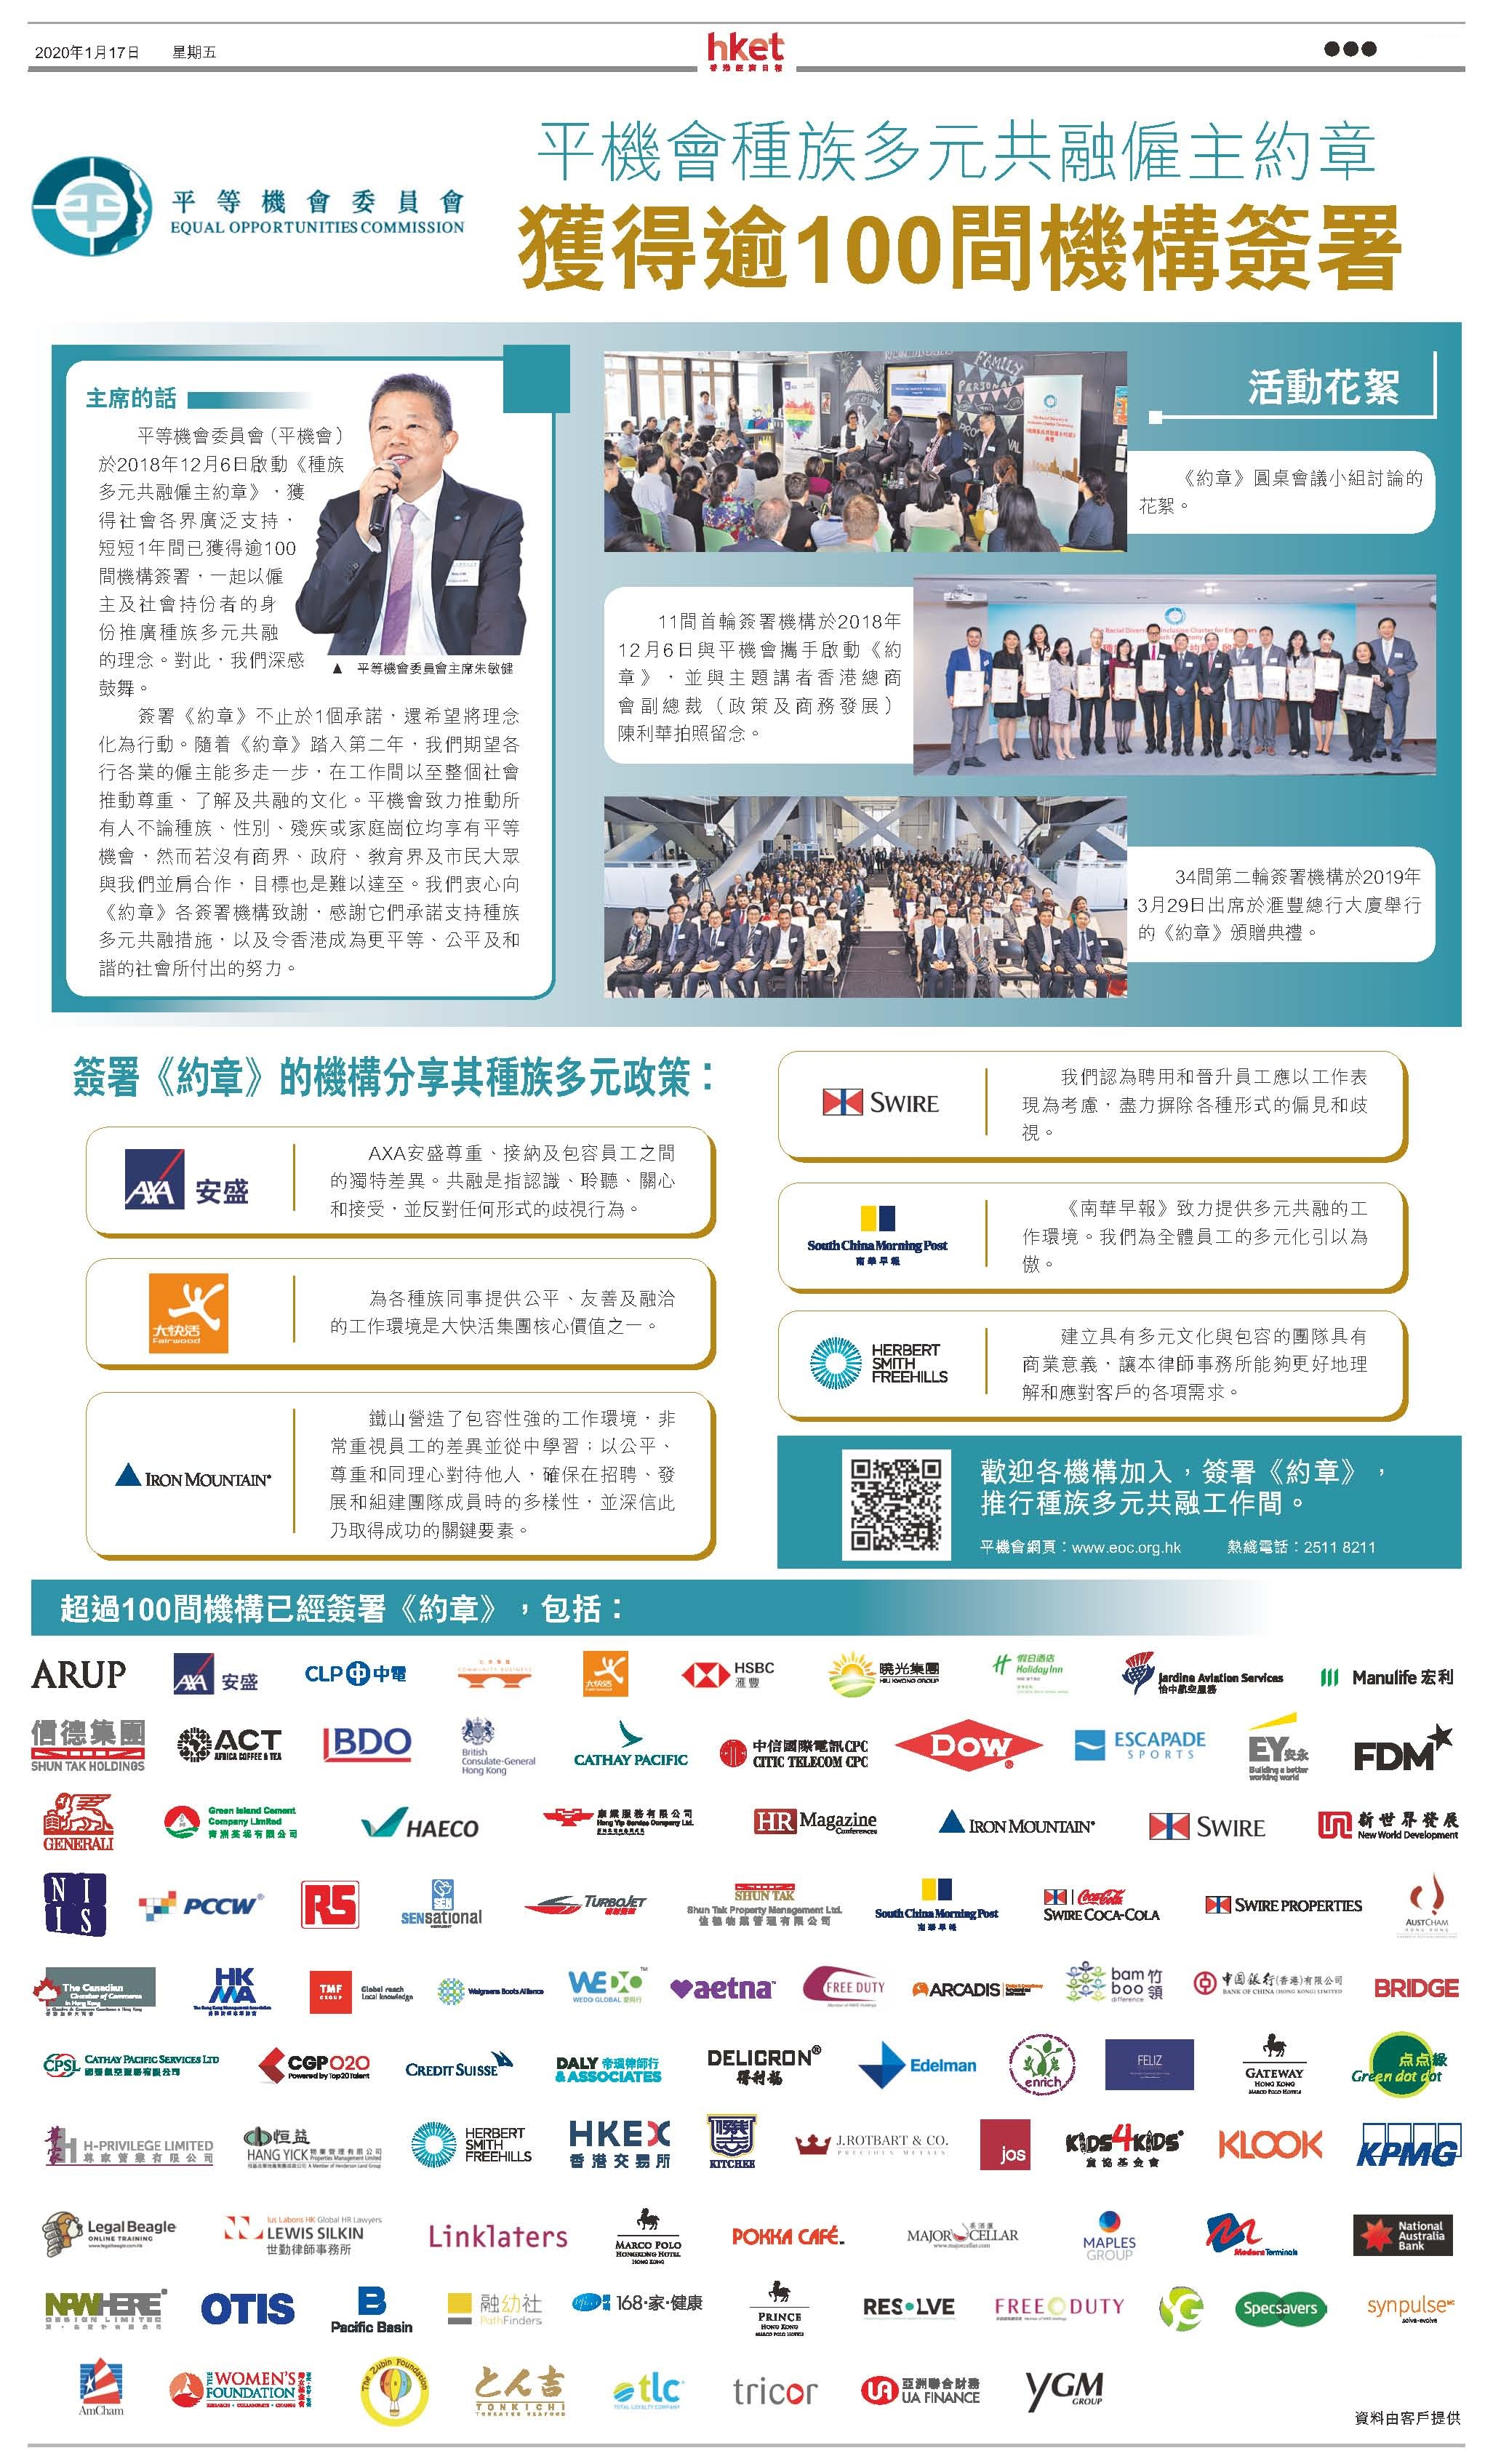 Newspaper supplement published by Hong Kong Economic Times on 17 January 2020